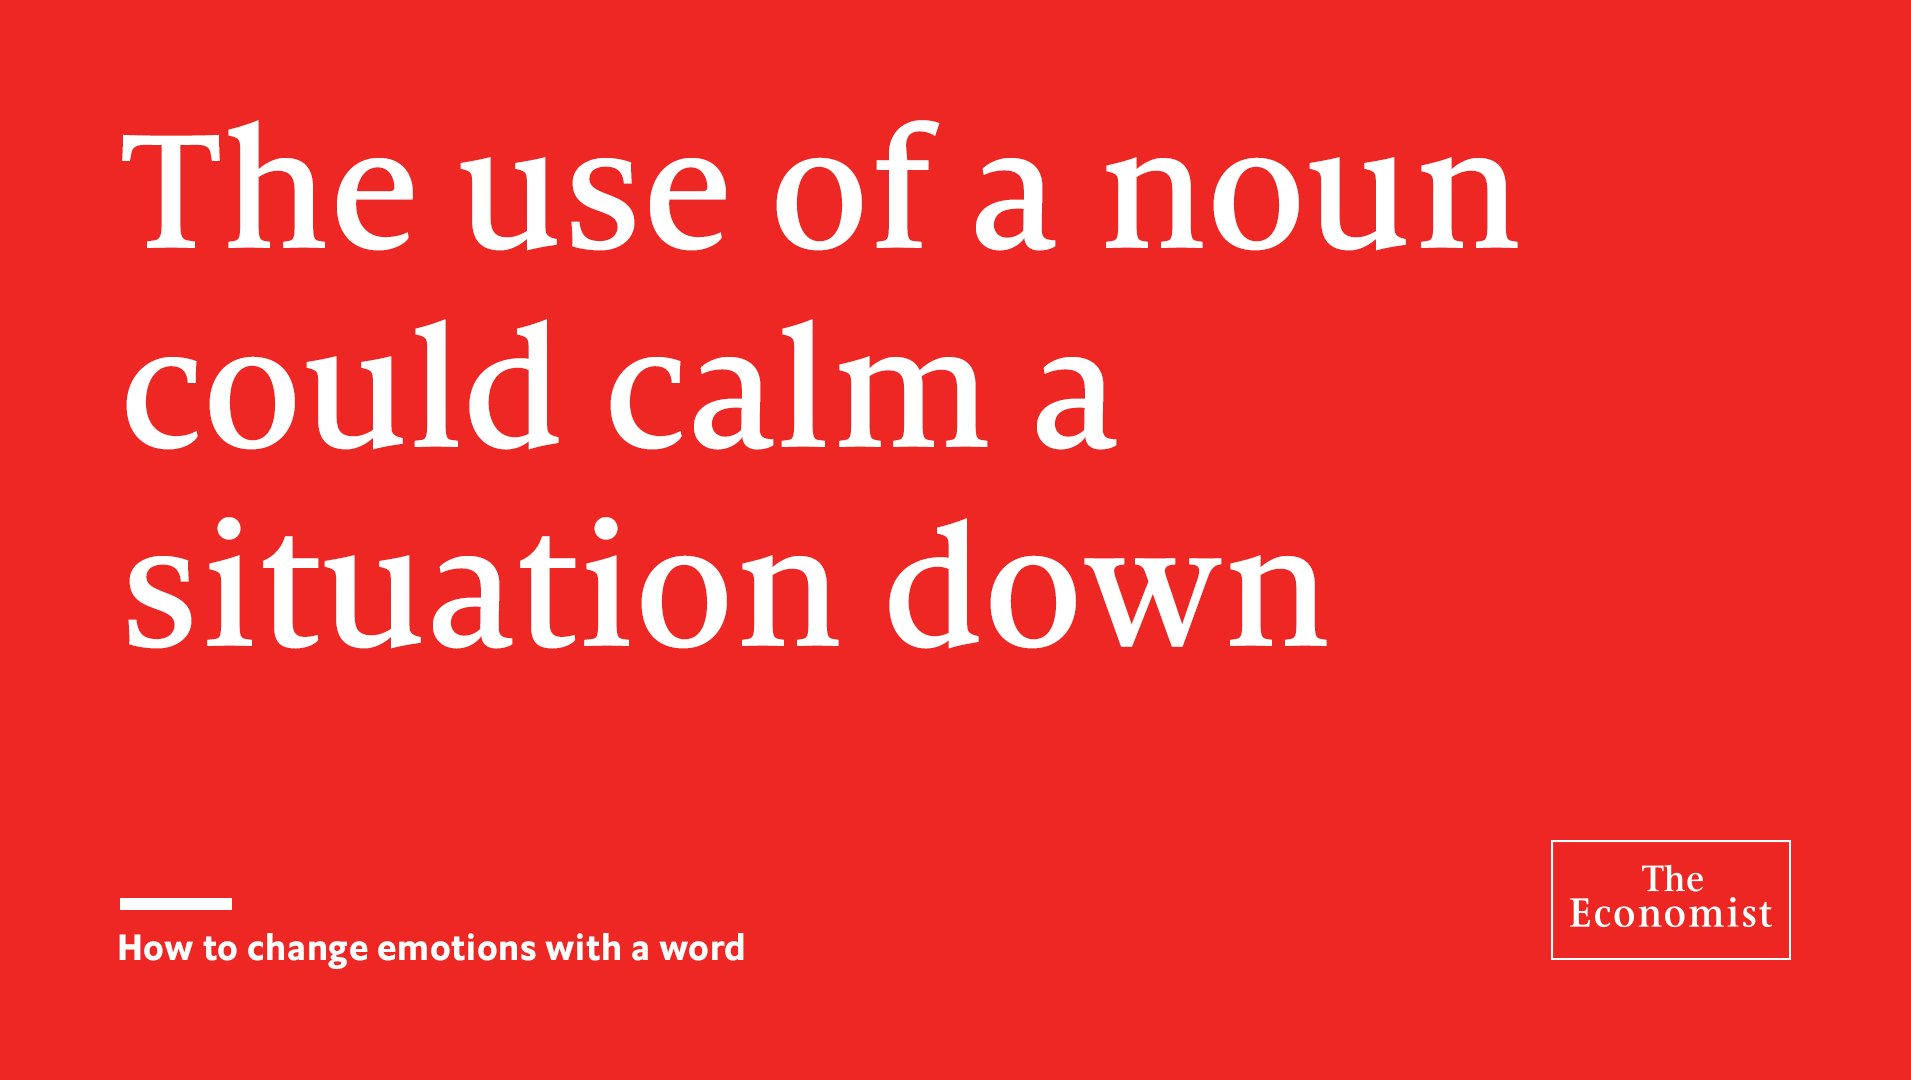 Relying on nouns rather than verbs is a good way of using language to reduce tension https://t.co/1oV0Fz0nNL https://t.co/h7zvJdAdhP